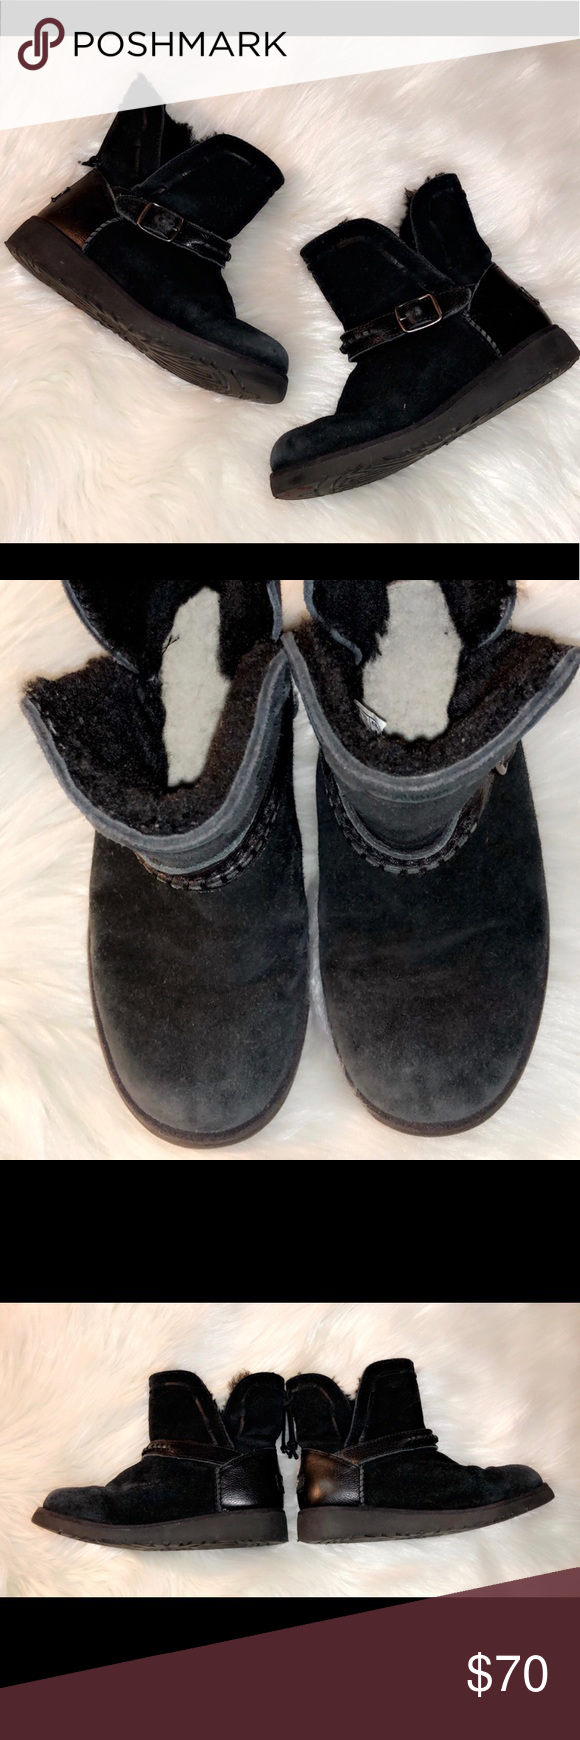 UGG Black Boots Pre worn in good condition girls UGG boots. Black color. Leather belt detail and black leather heel patch. Only a few small flaws visible in pictures, but have lots of life left in them! Item#1313 UGG Shoes Boots #uggbootsoutfitblackgirl UGG Black Boots Pre worn in good condition girls UGG boots. Black color. Leather belt detail and black leather heel patch. Only a few small flaws visible in pictures, but have lots of life left in them! Item#1313 UGG Shoes Boots #uggbootsoutfitblackgirl